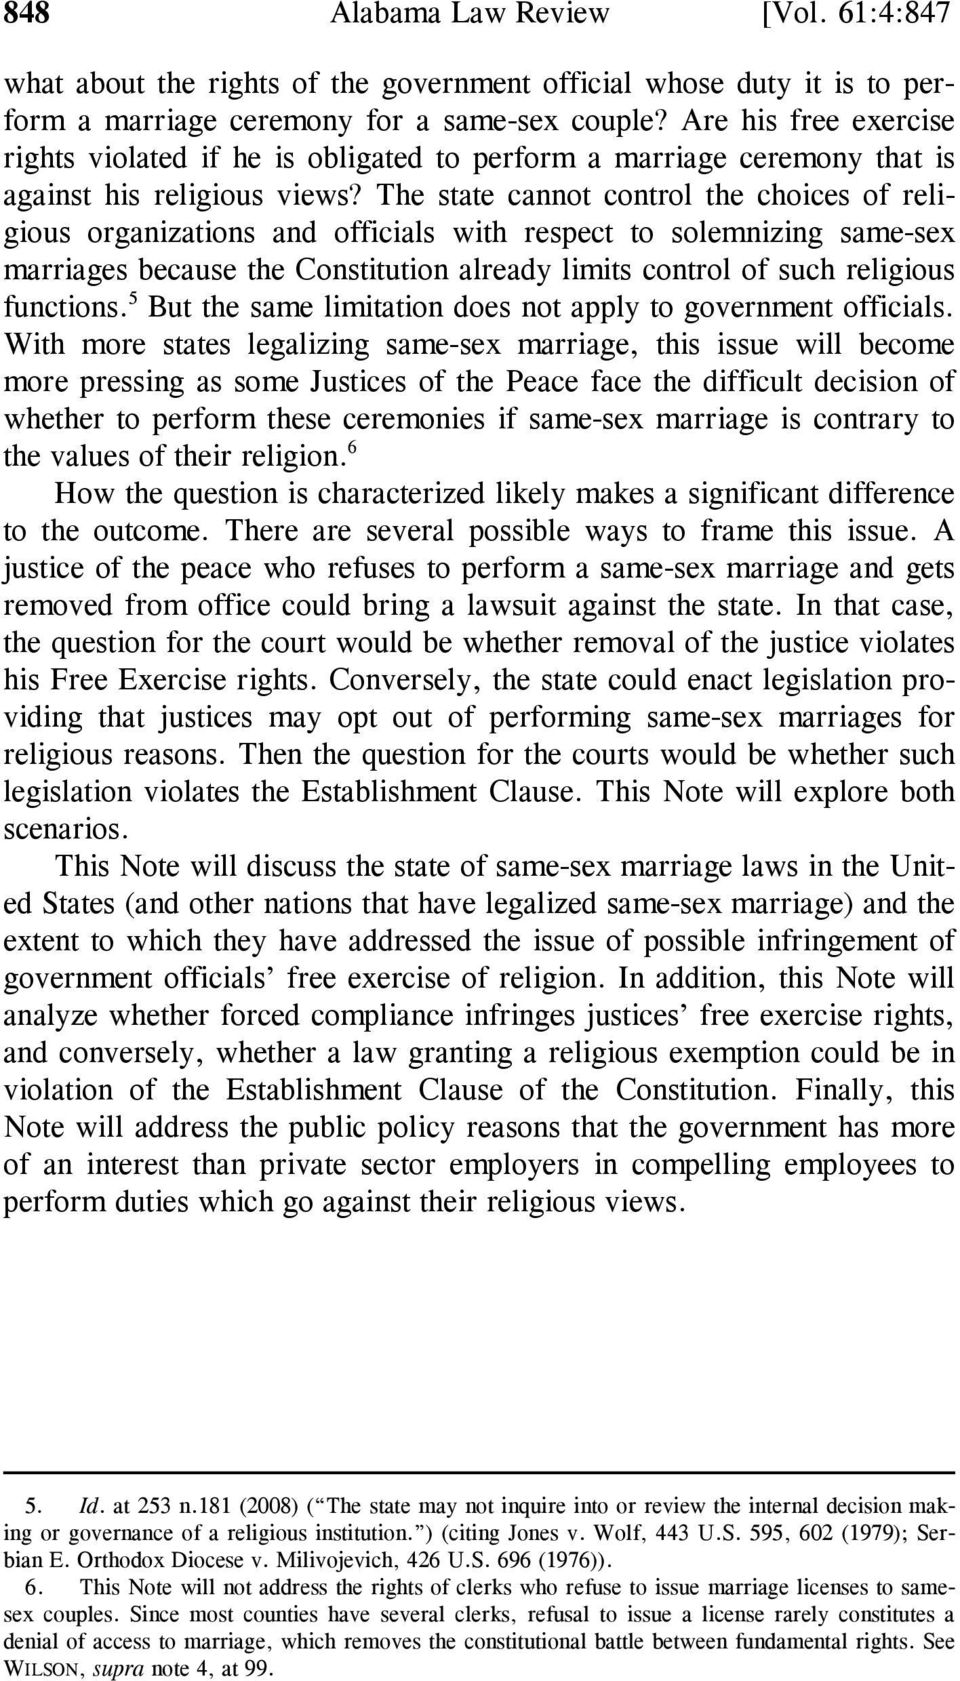 The state cannot control the choices of religious organizations and officials with respect to solemnizing same-sex marriages because the Constitution already limits control of such religious